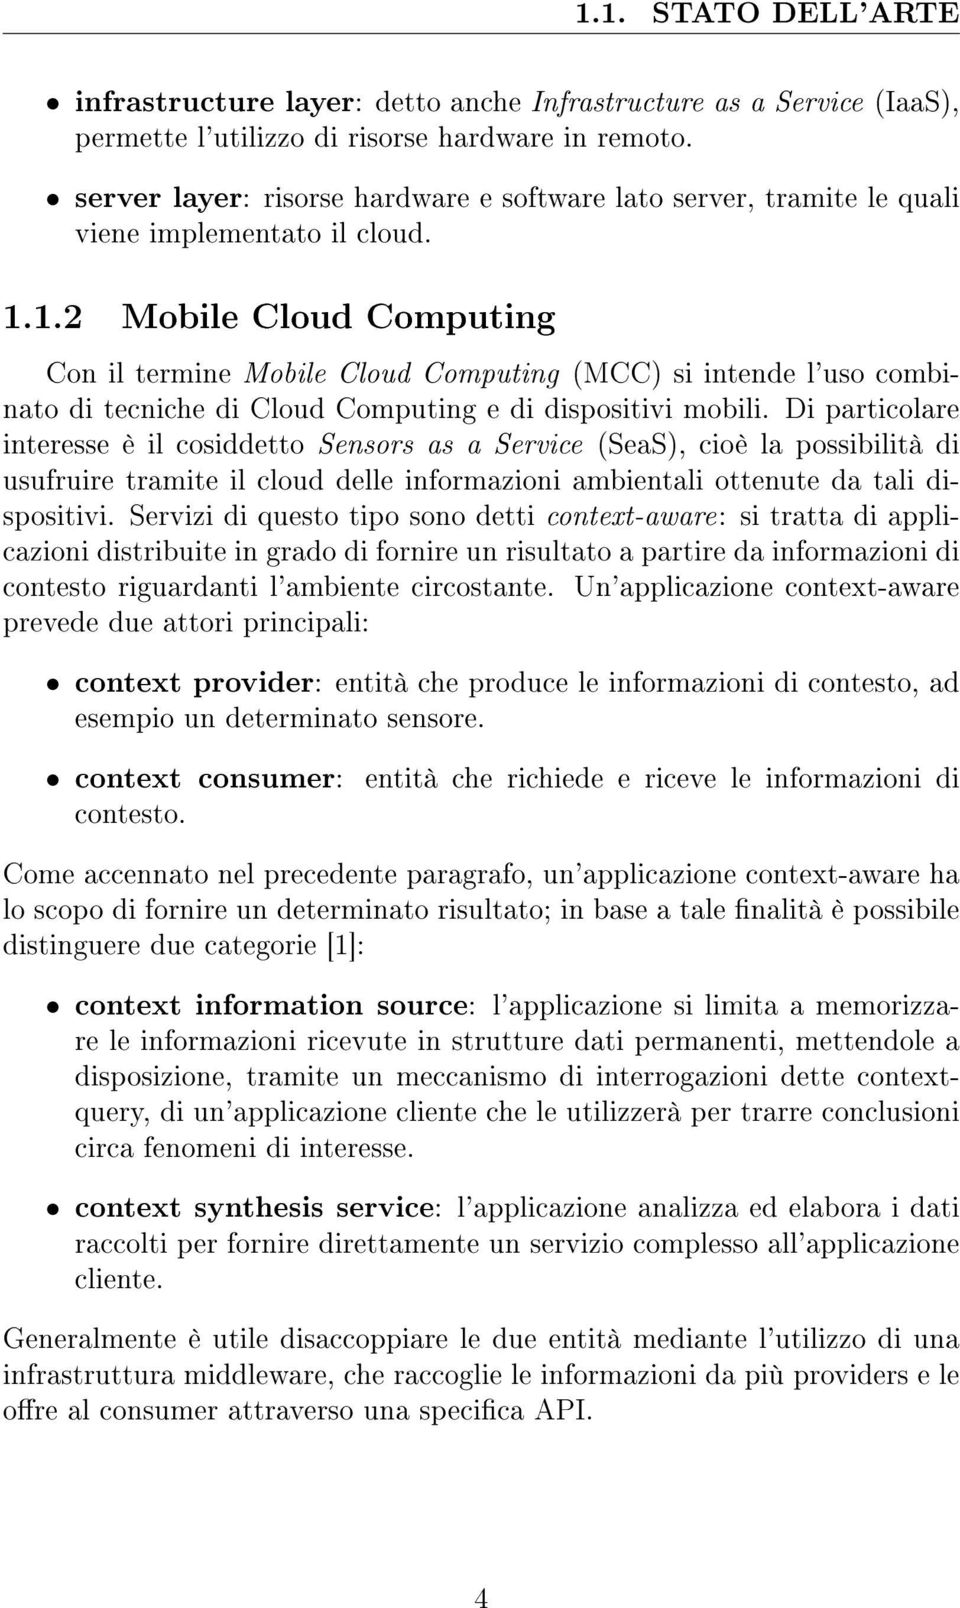 1.2 Mobile Cloud Computing Con il termine Mobile Cloud Computing (MCC) si intende l'uso combinato di tecniche di Cloud Computing e di dispositivi mobili.